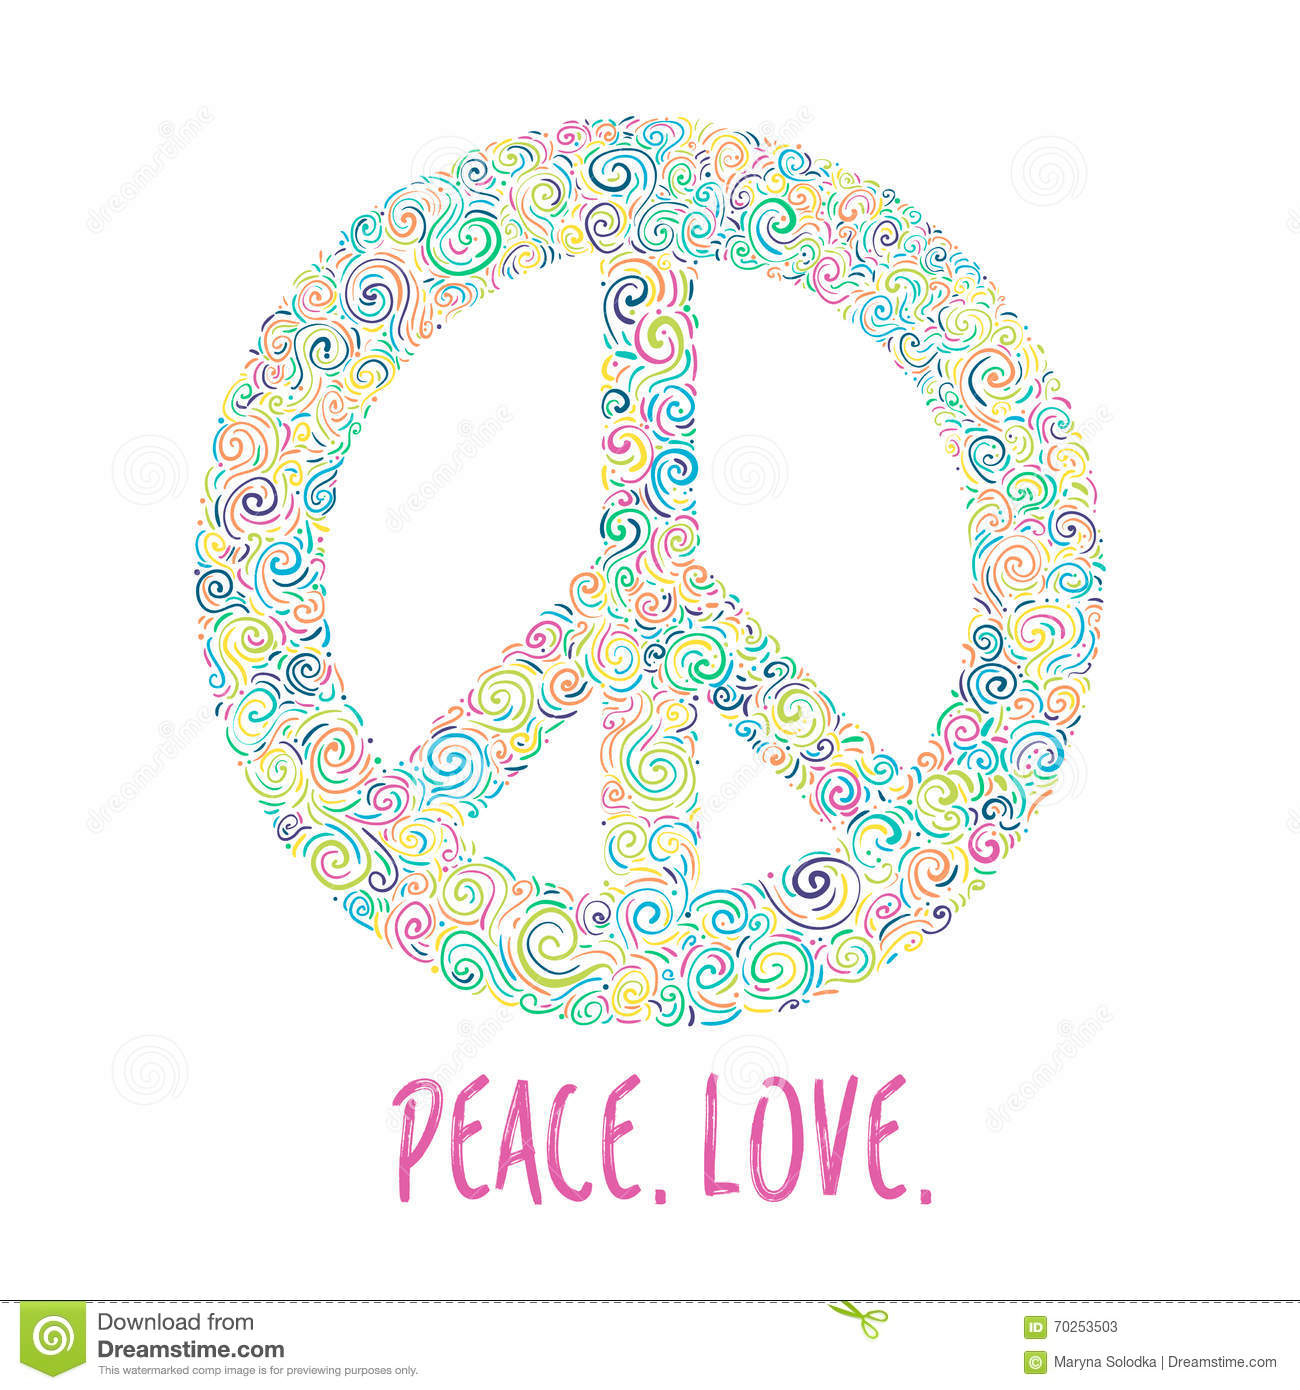 Vector illustration of peace sign on blue background template for download vector illustration of peace sign on blue background template for international peace day maxwellsz